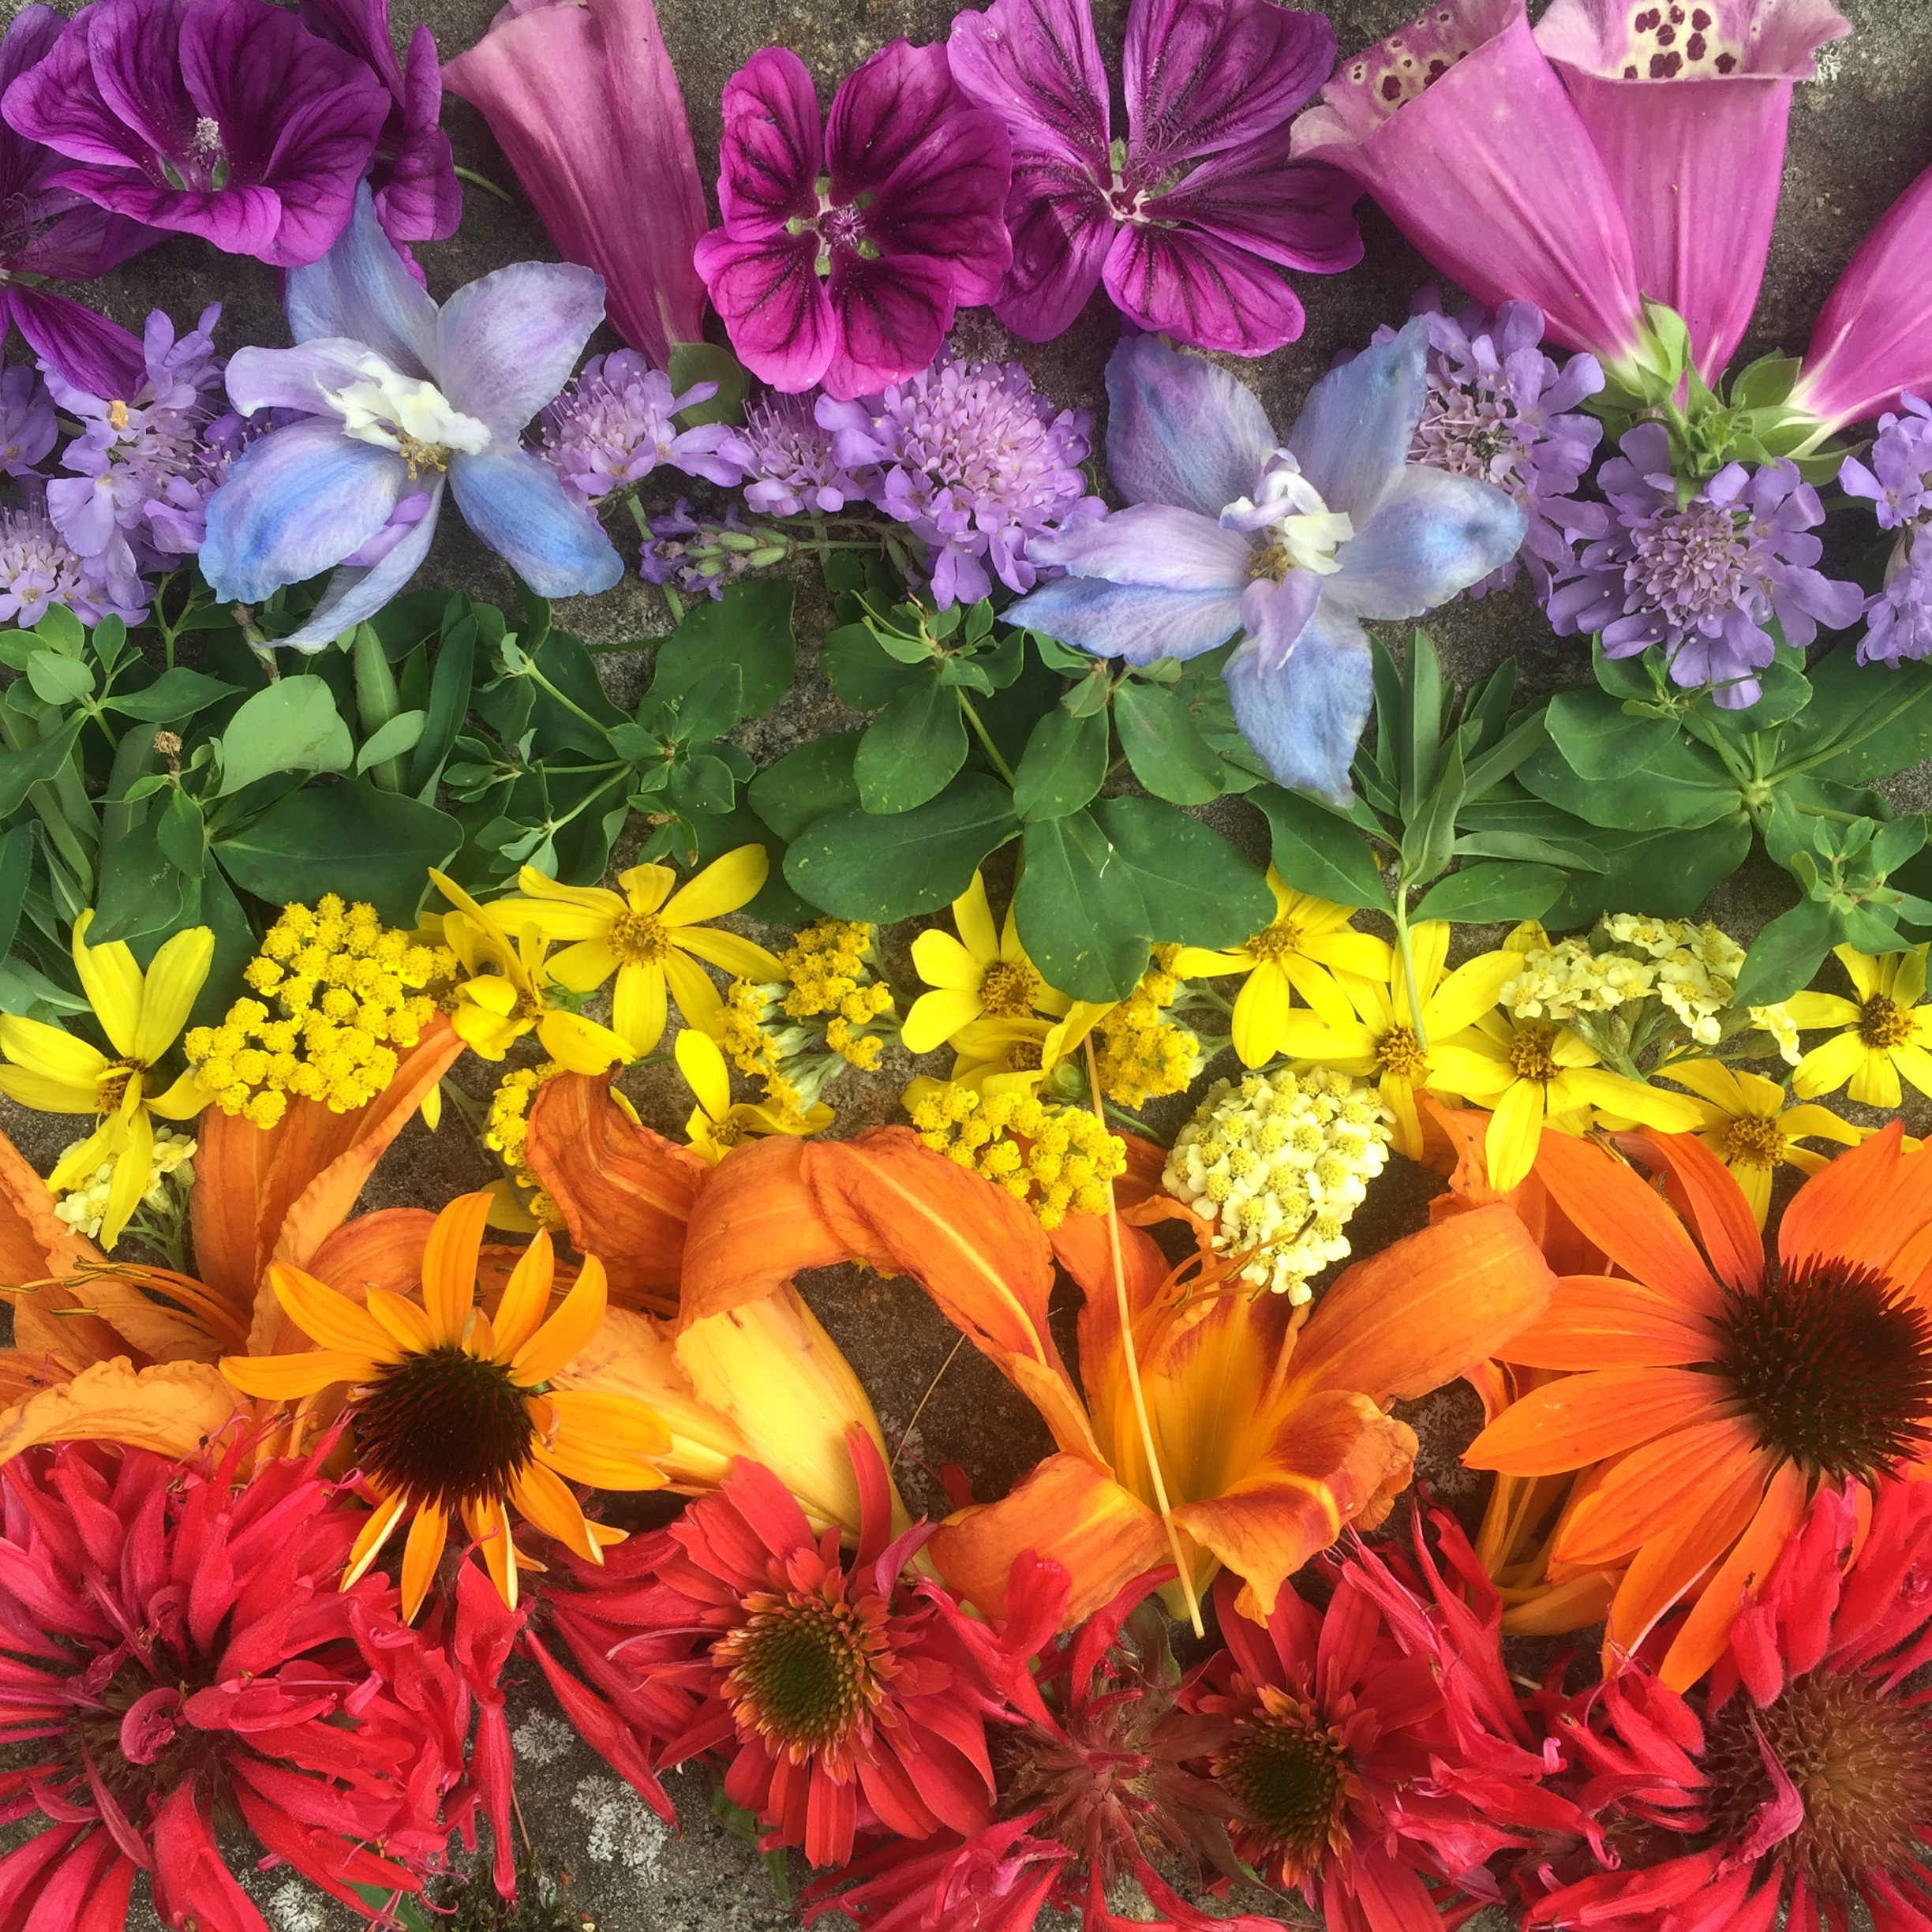 A quick overhead shot from last summer. While, less fancy than I would have liked, this rainbow of blooms was appreciated by many of my followers.